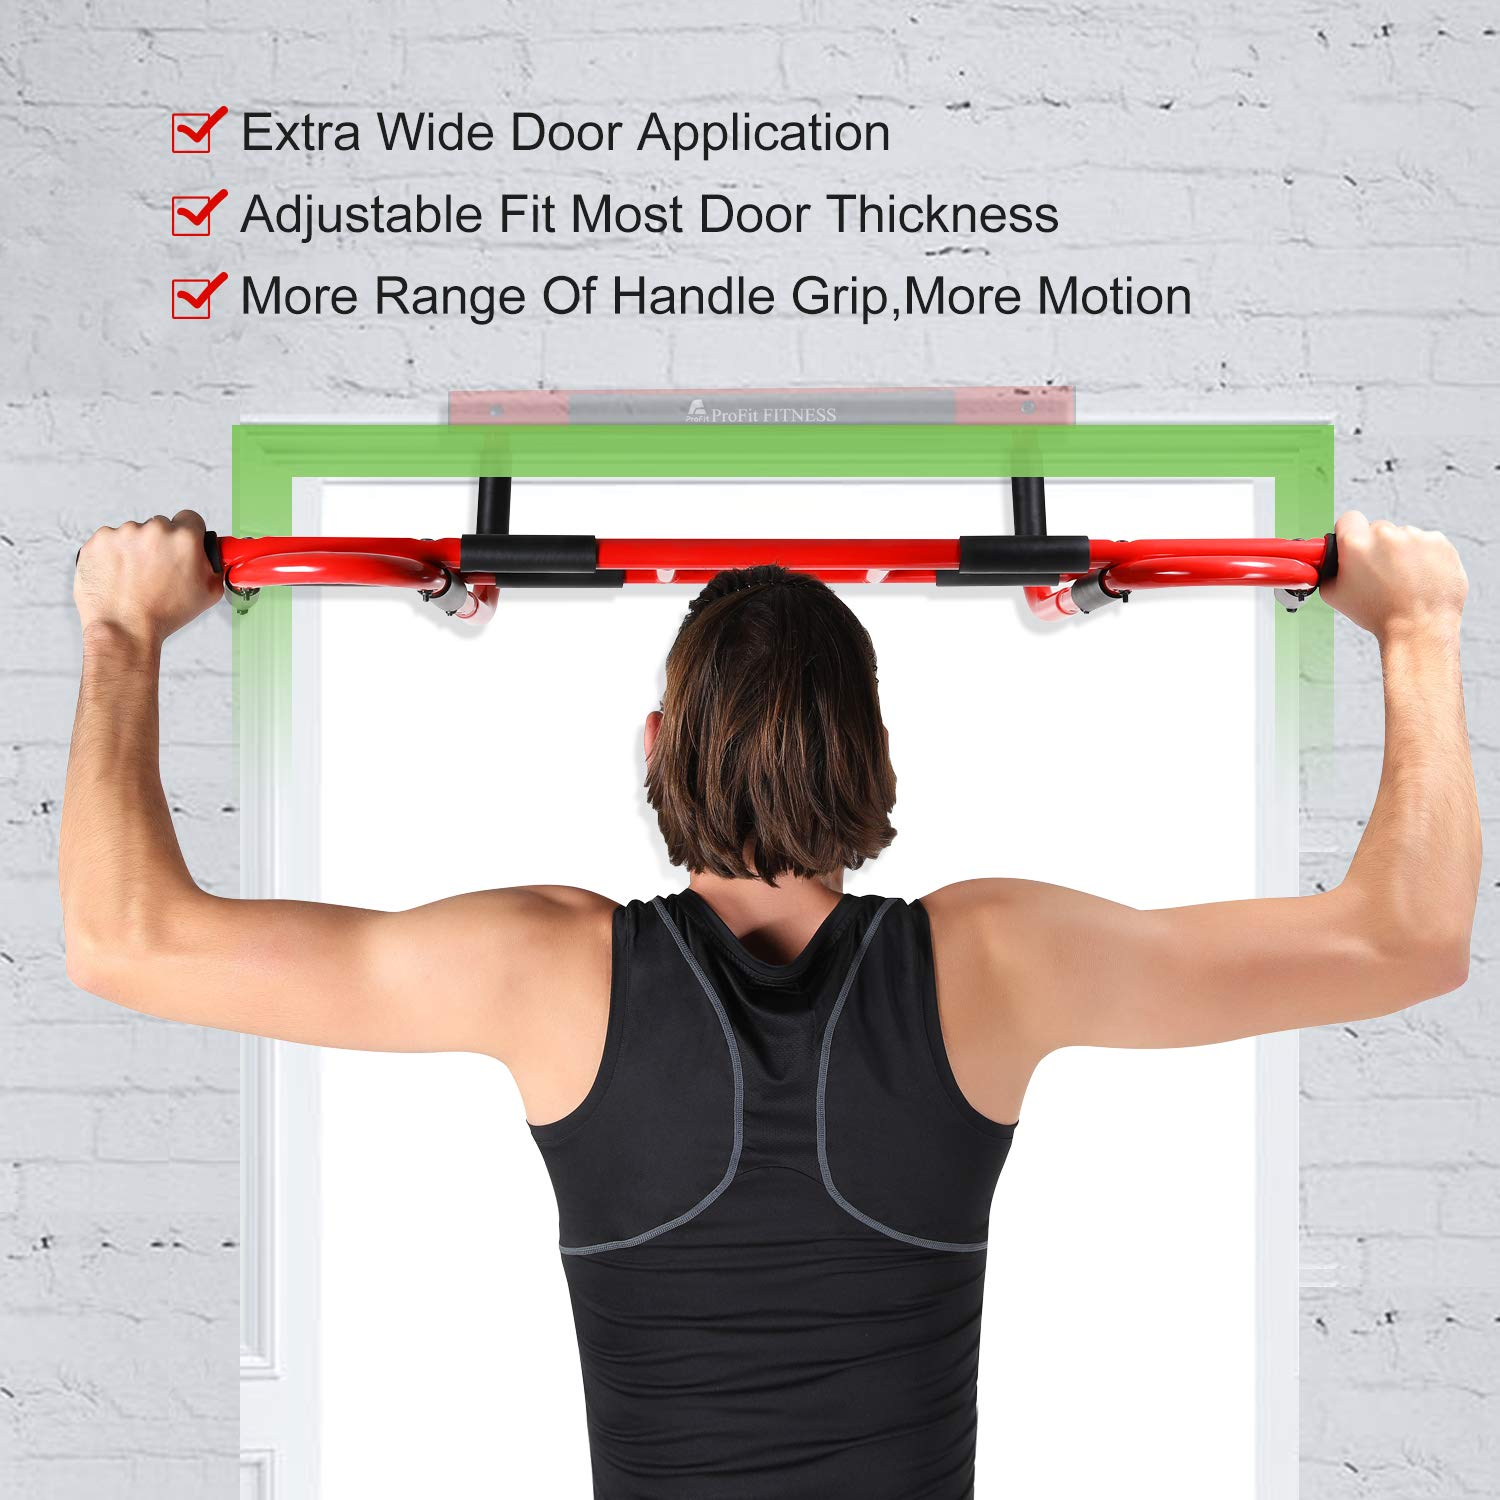 Profit Fitness Doorway Pull Up Chin Up Bar Door Gym Upper Body Workout Trainer Bar Maximum Stability-Weight Load of 600lbs-16 Grip Position-Easy and Quick 4 Screws to Setup Anywhere Home Workout